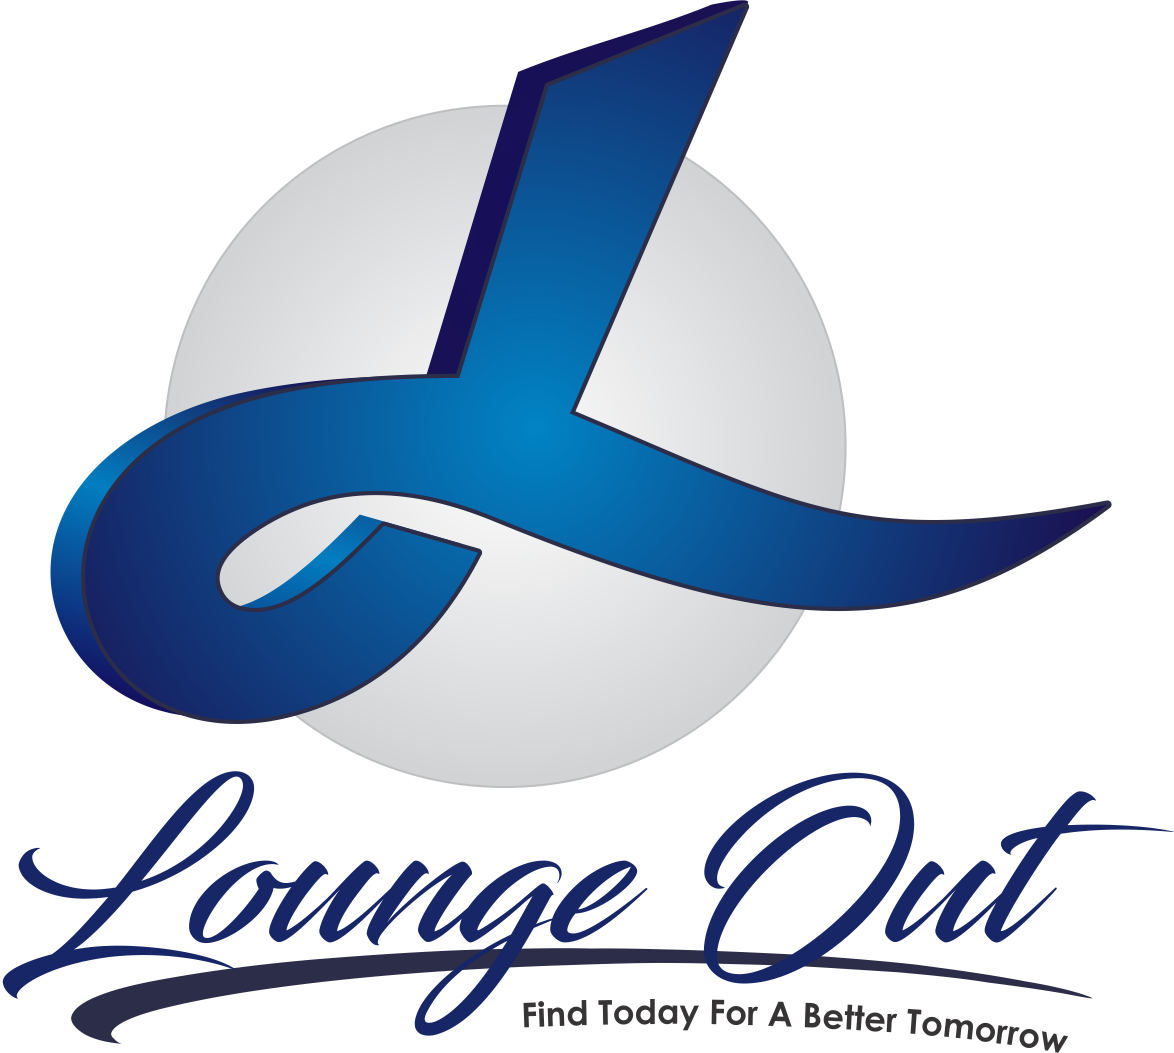 Loungeout